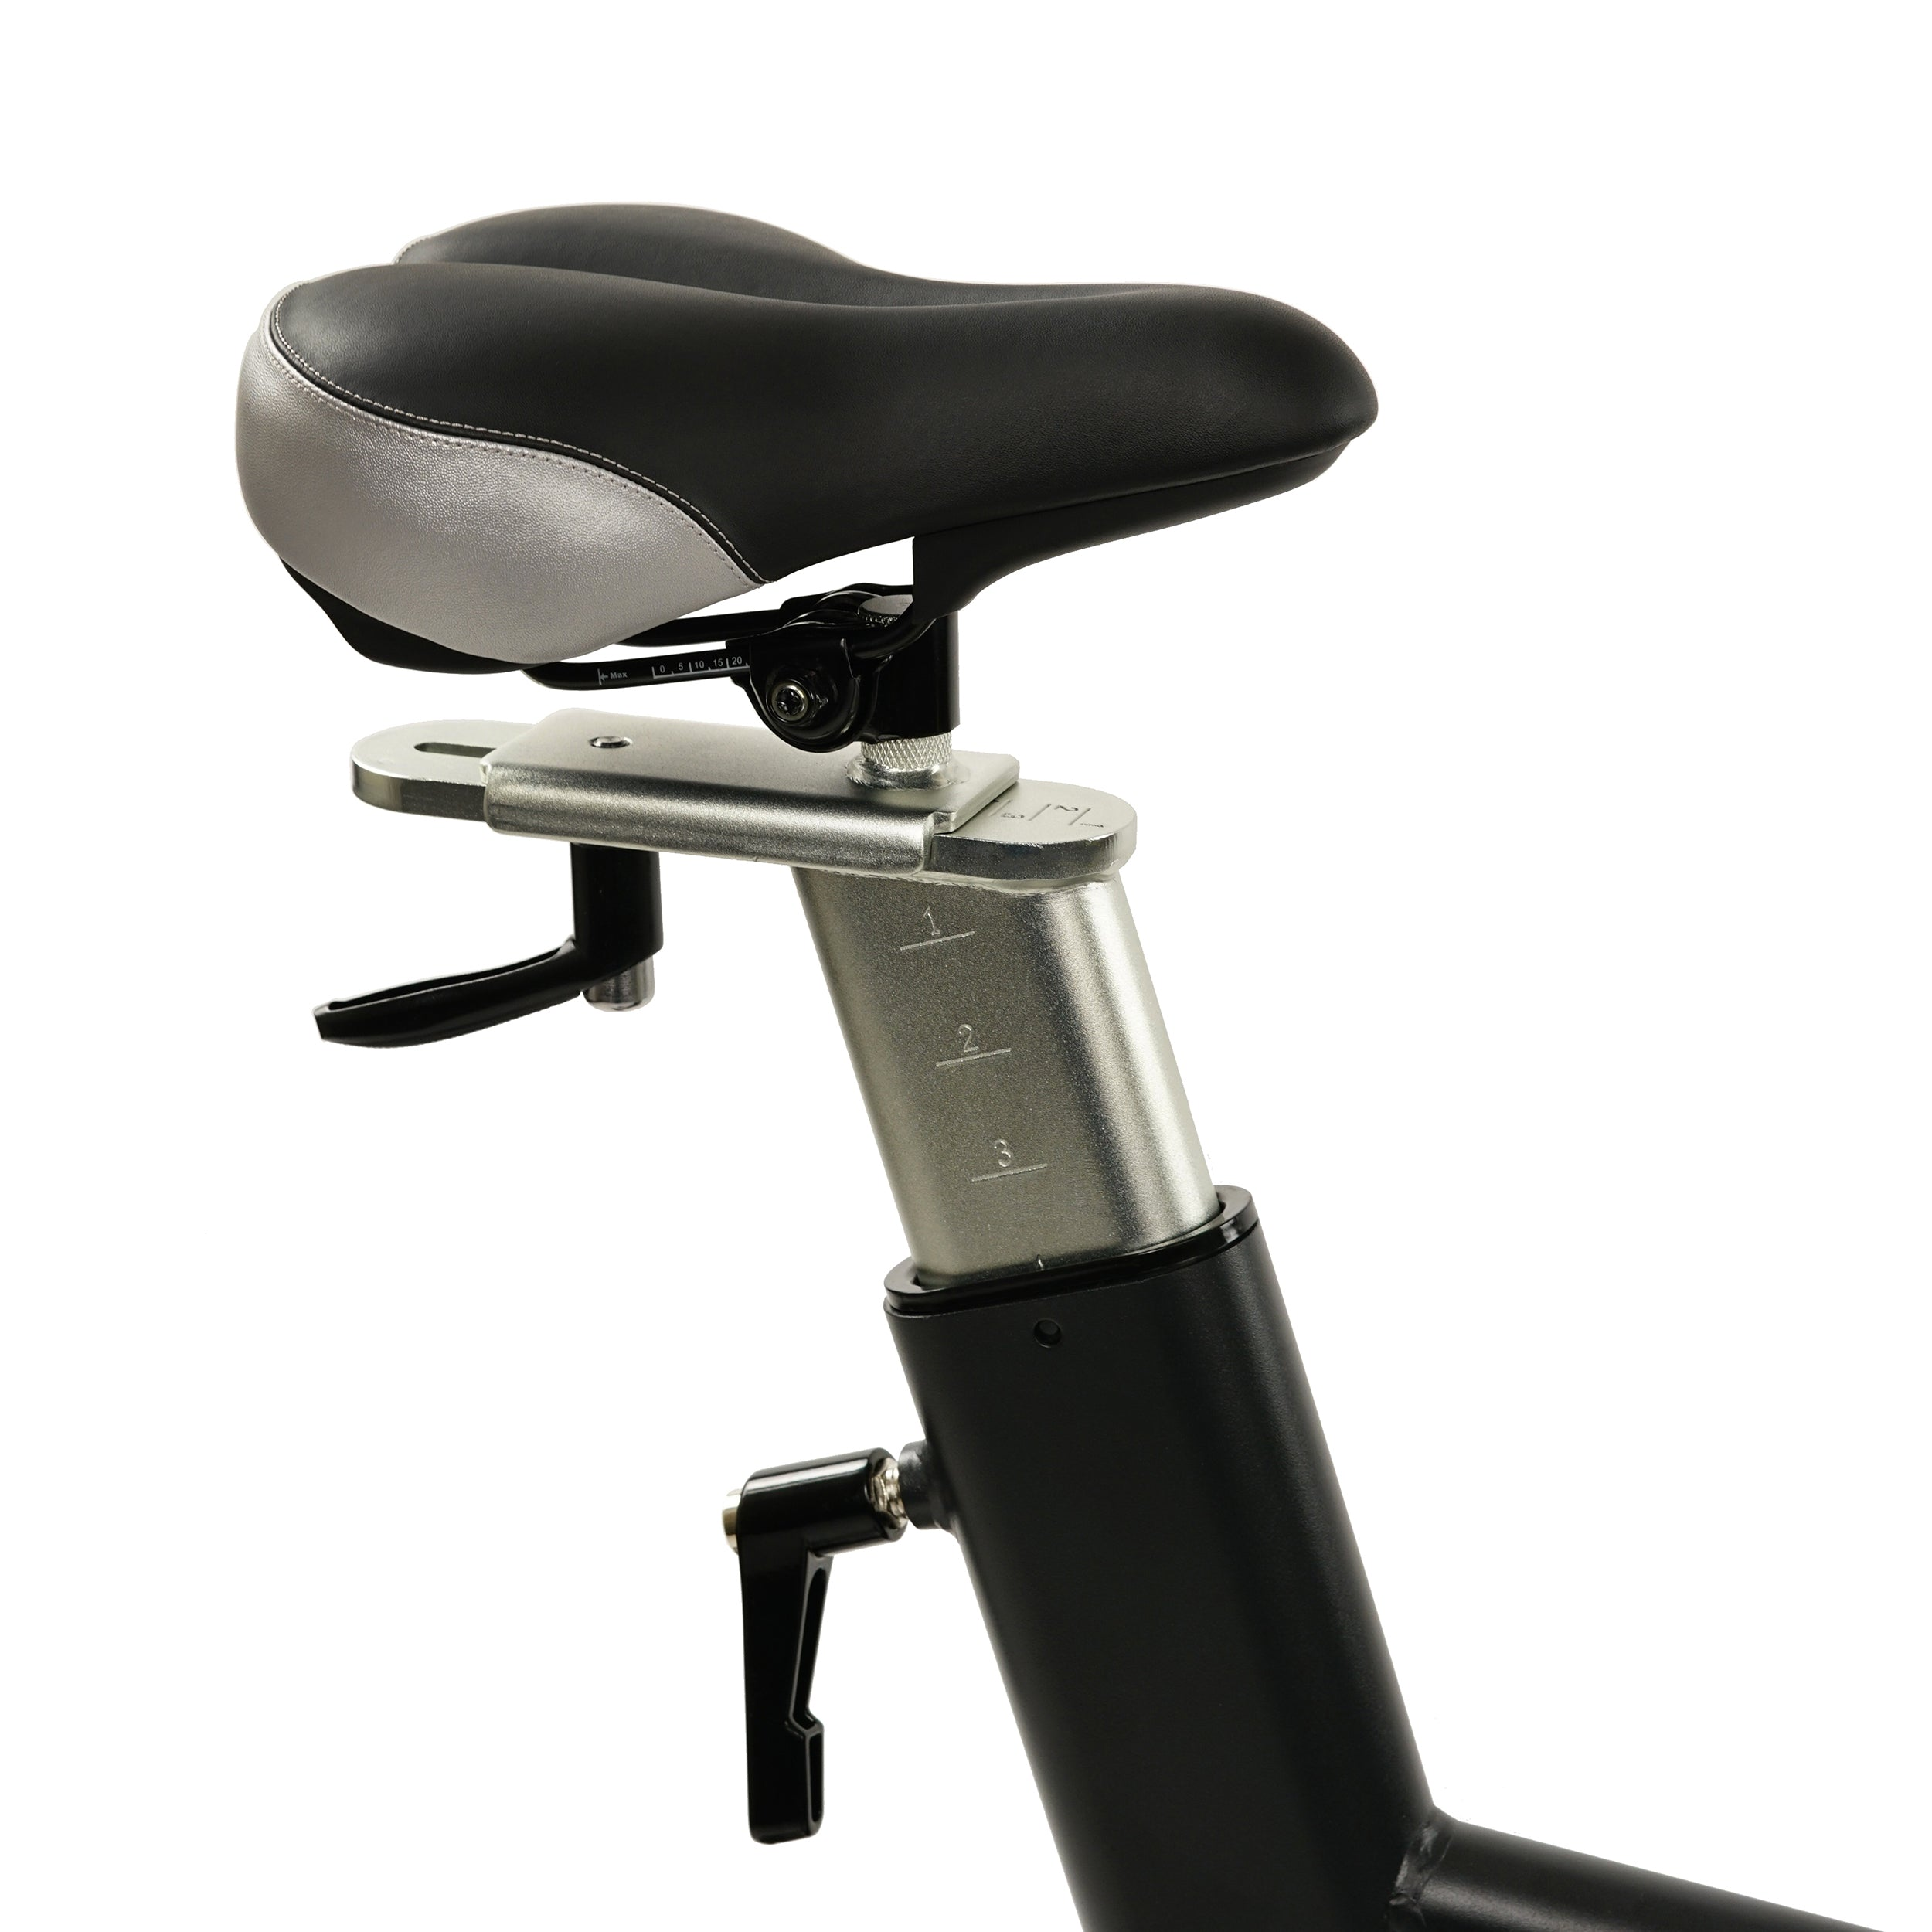 sunny-health-fitness-bikes-evolution-pro-magnetic-belt-drive-indoor-cycling-bike-high-weight-capacity-heavy-duty-flywheel-SF-B1714-seat